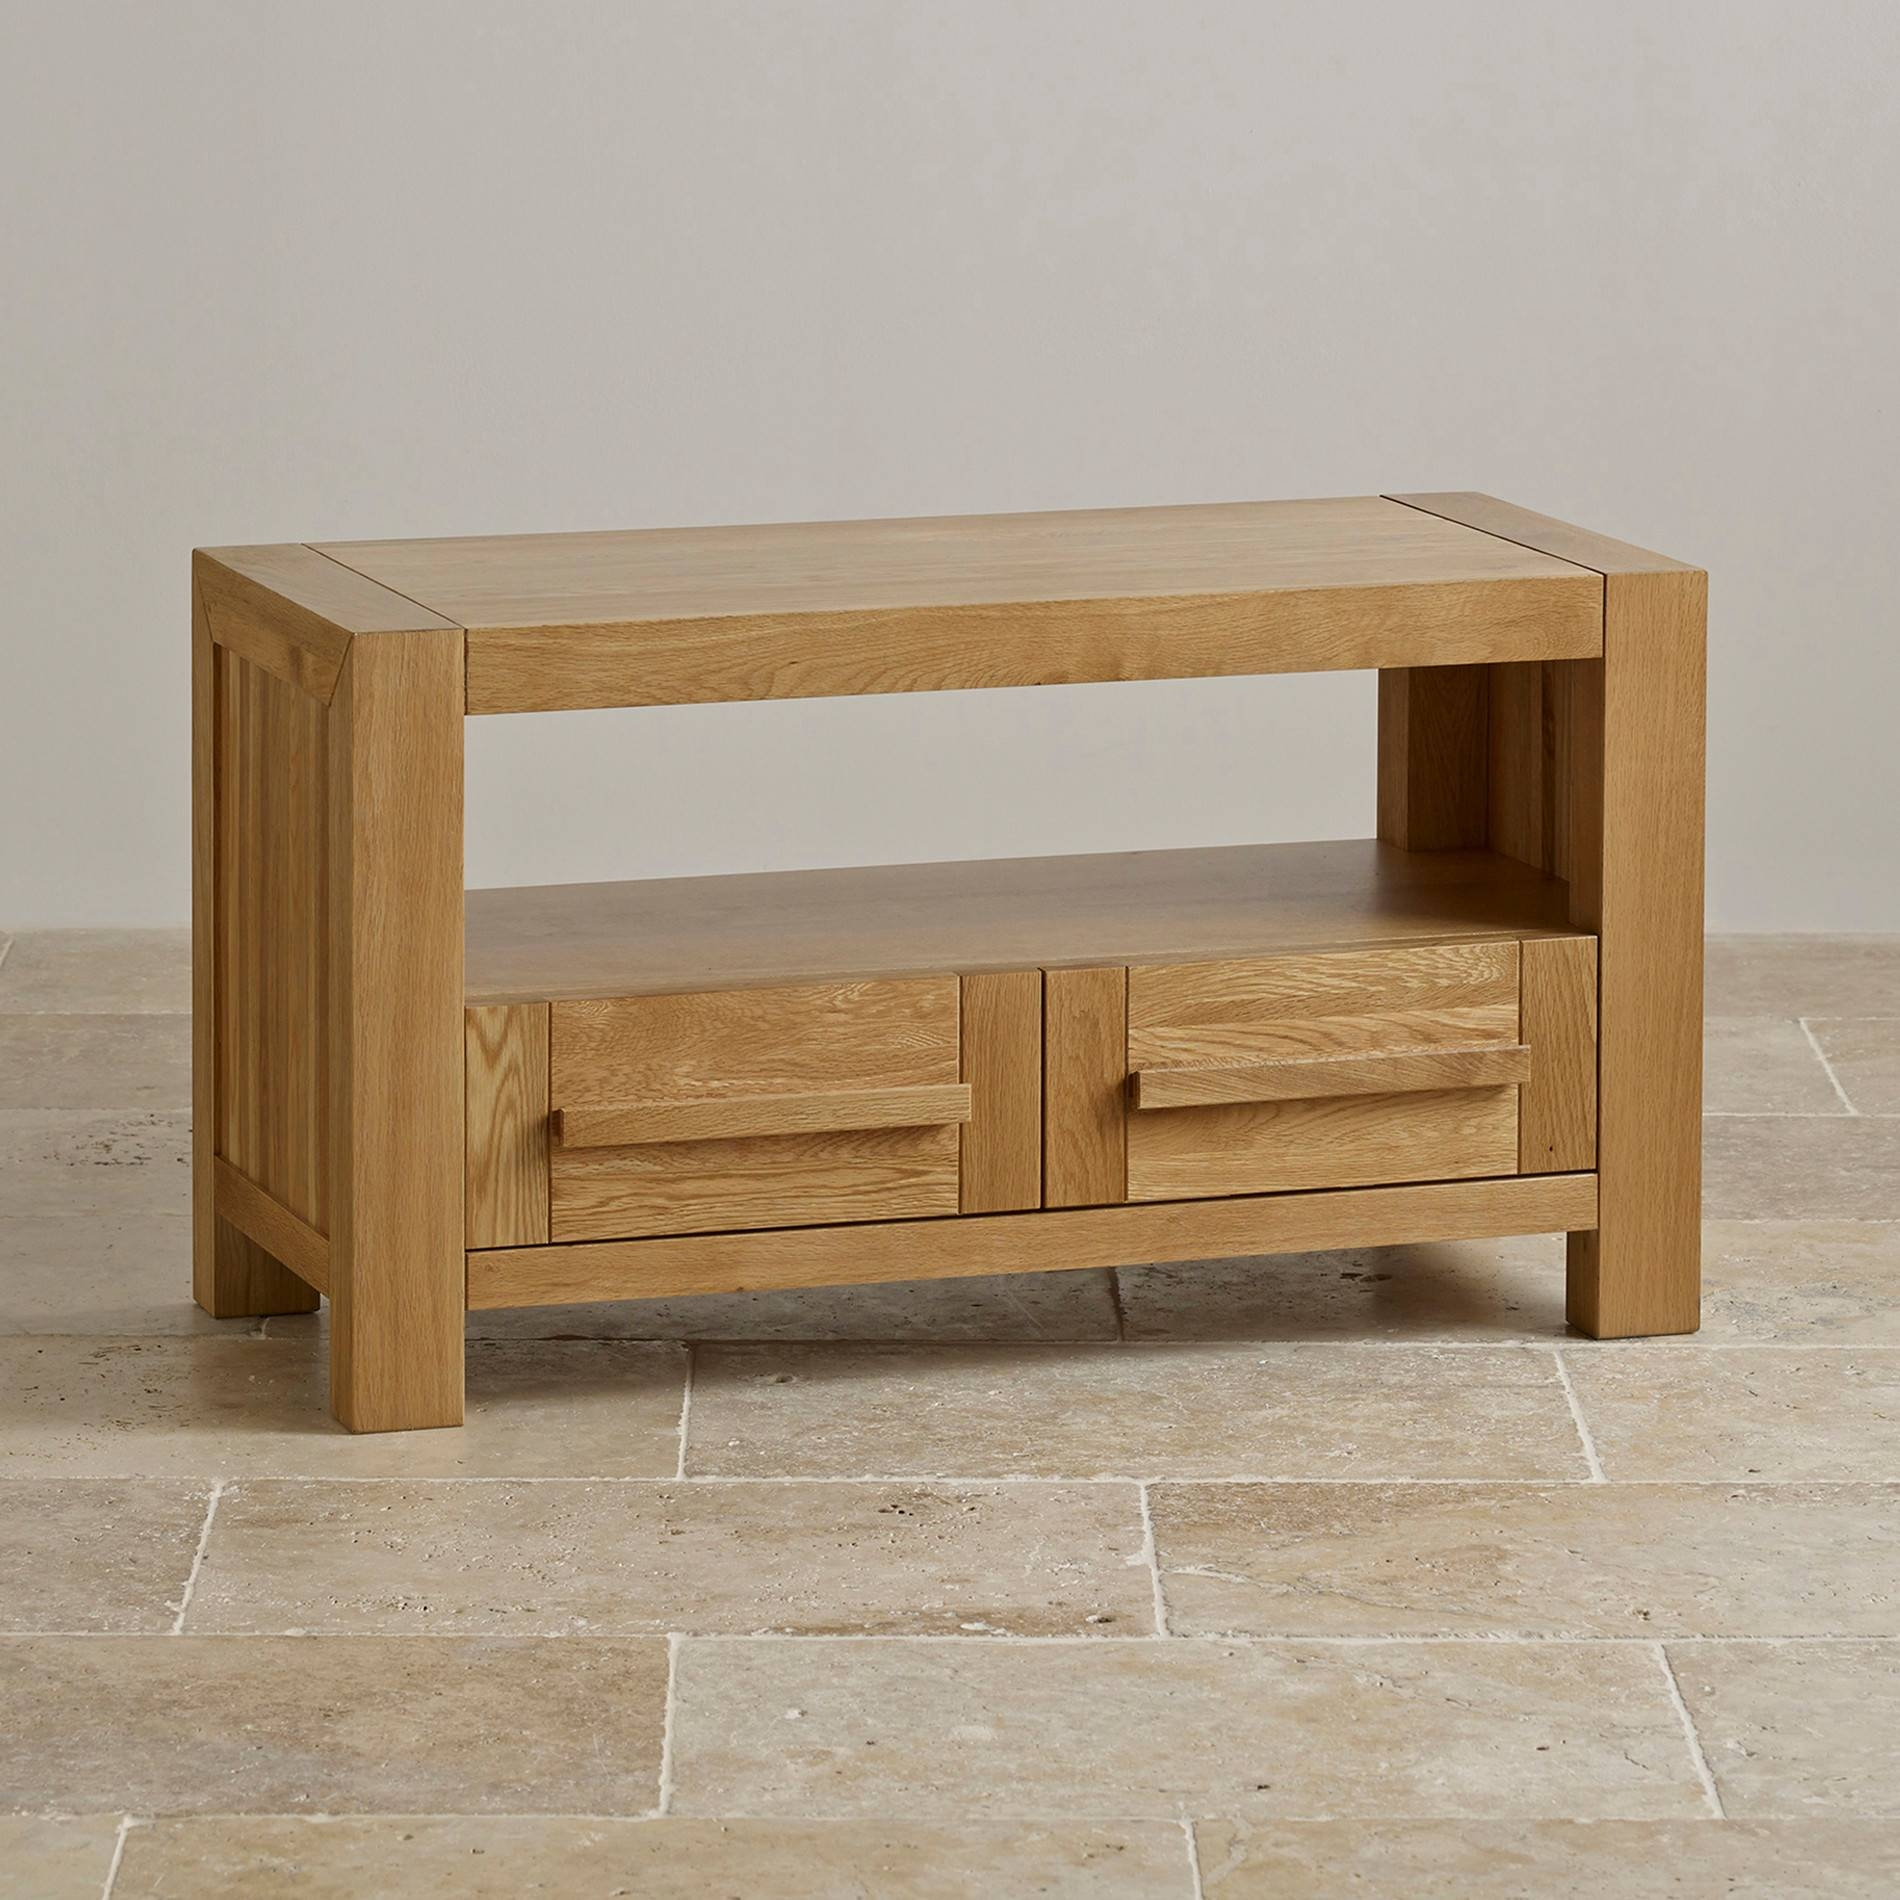 Fresco 2 Drawer Tv Cabinet In Solid Oak | Oak Furniture Land Intended For Oak Tv Cabinets (View 3 of 15)